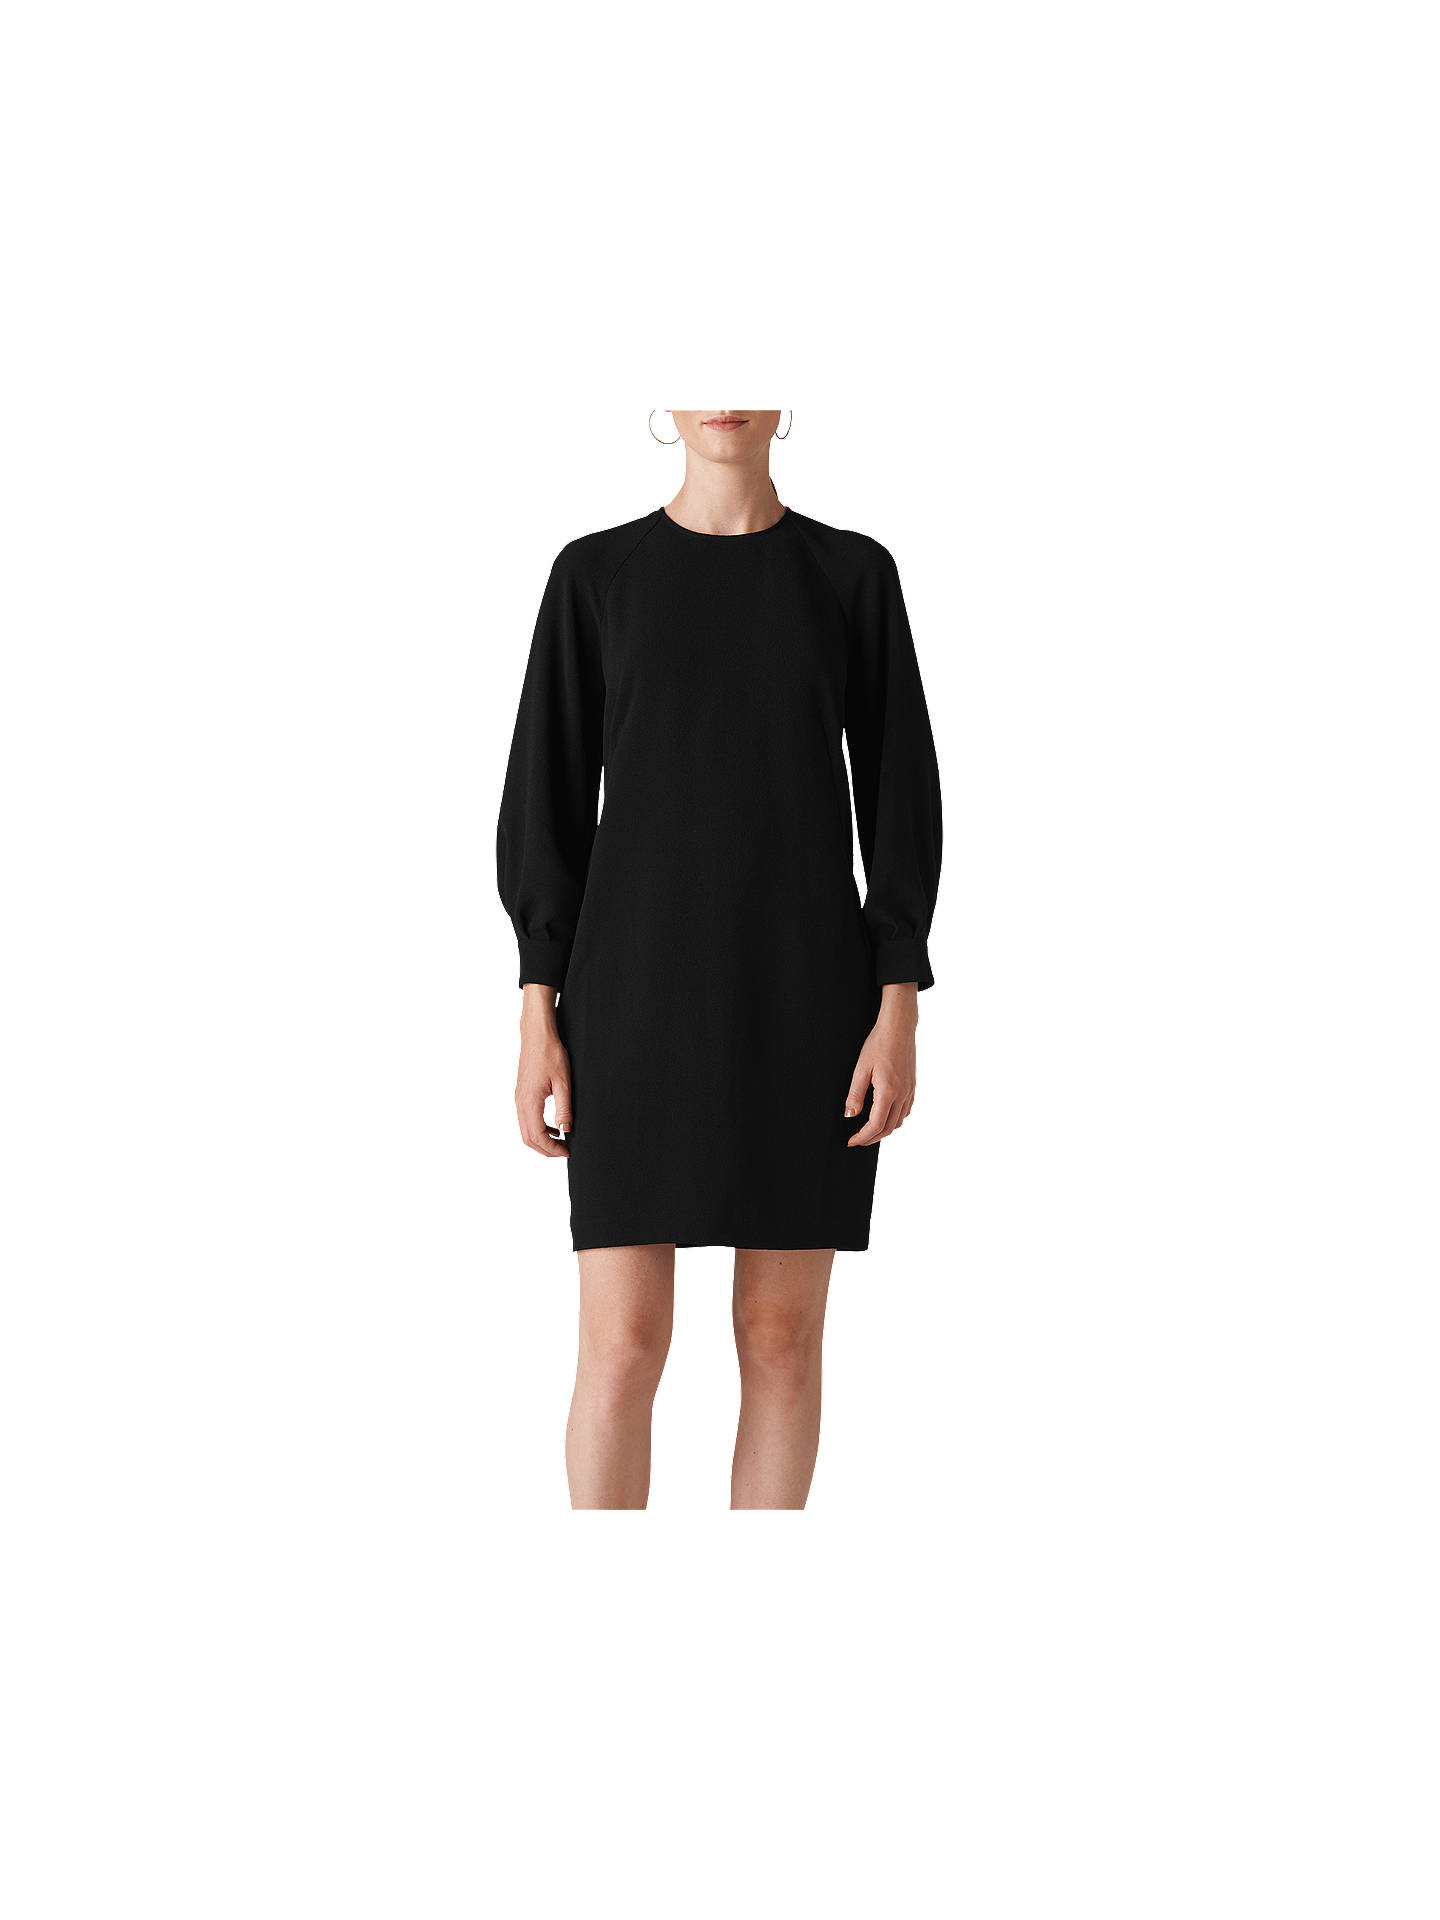 View All Women s Dresses. Previous Image Next Image. BuyWhistles Tihara  Textured Dress 132980595